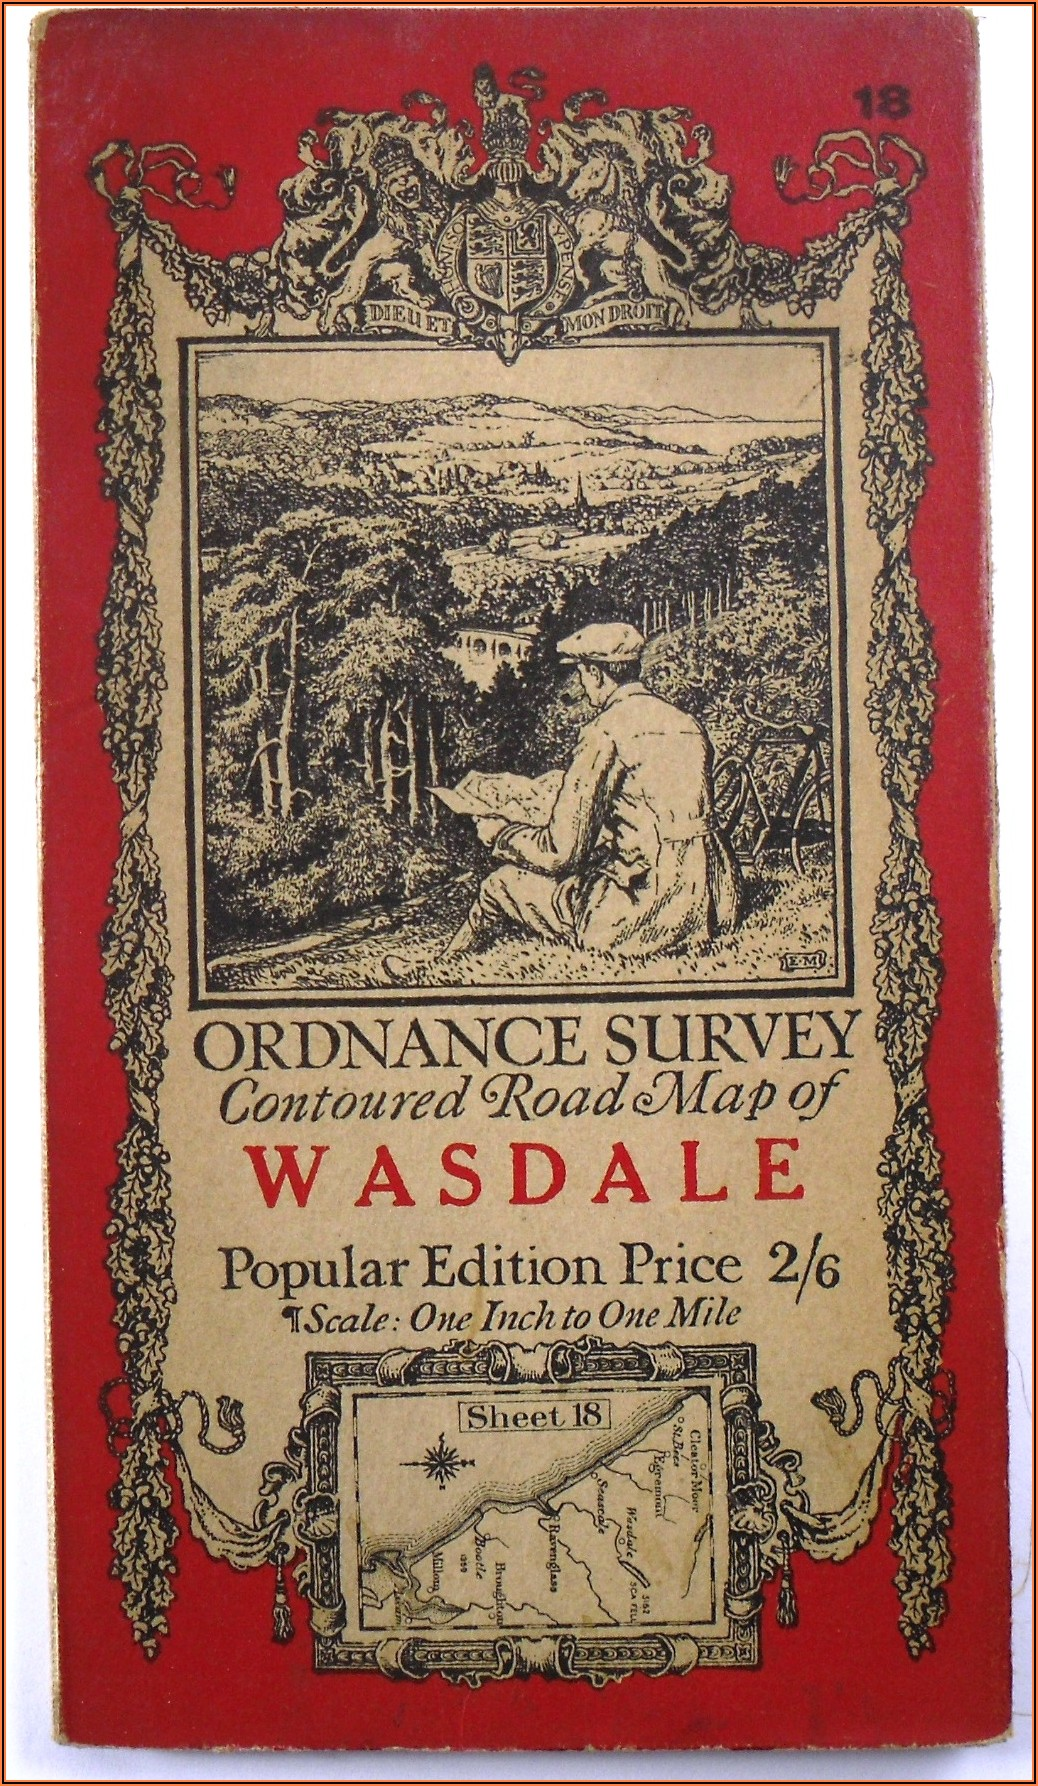 Old Ordnance Survey Maps To Sell